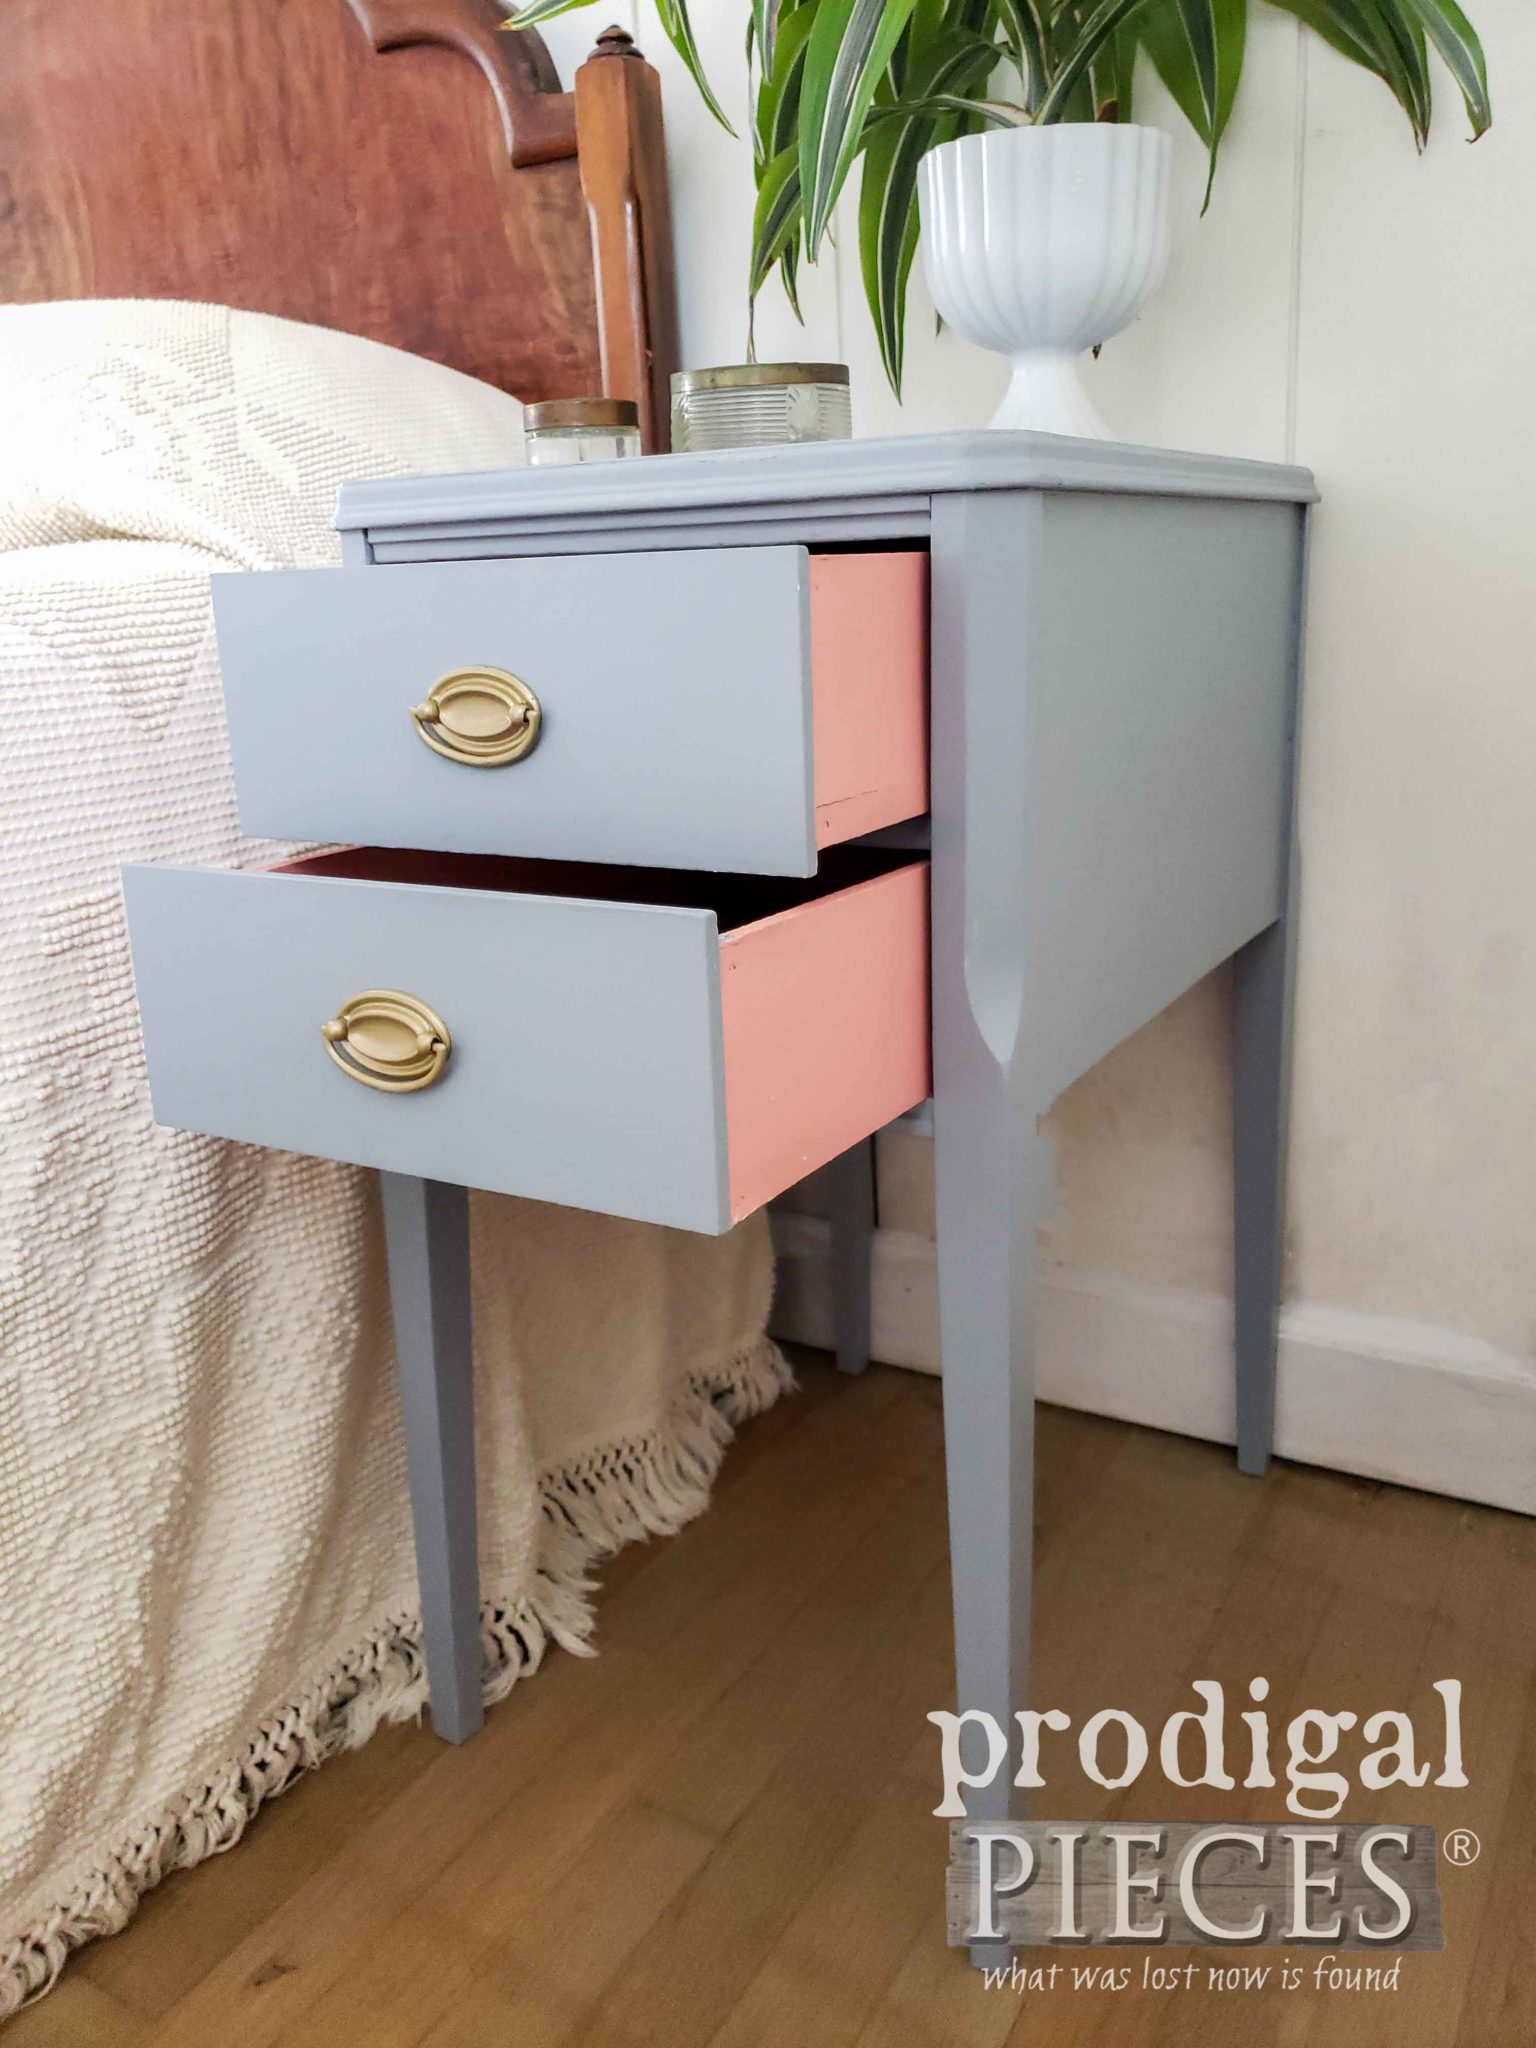 Vintage Nightstand with Open Peek-a-Boo Drawers | Prodigal Pieces | prodigalpieces.com #prodigalpieces #diy #furniture #home #homedecor #vintage